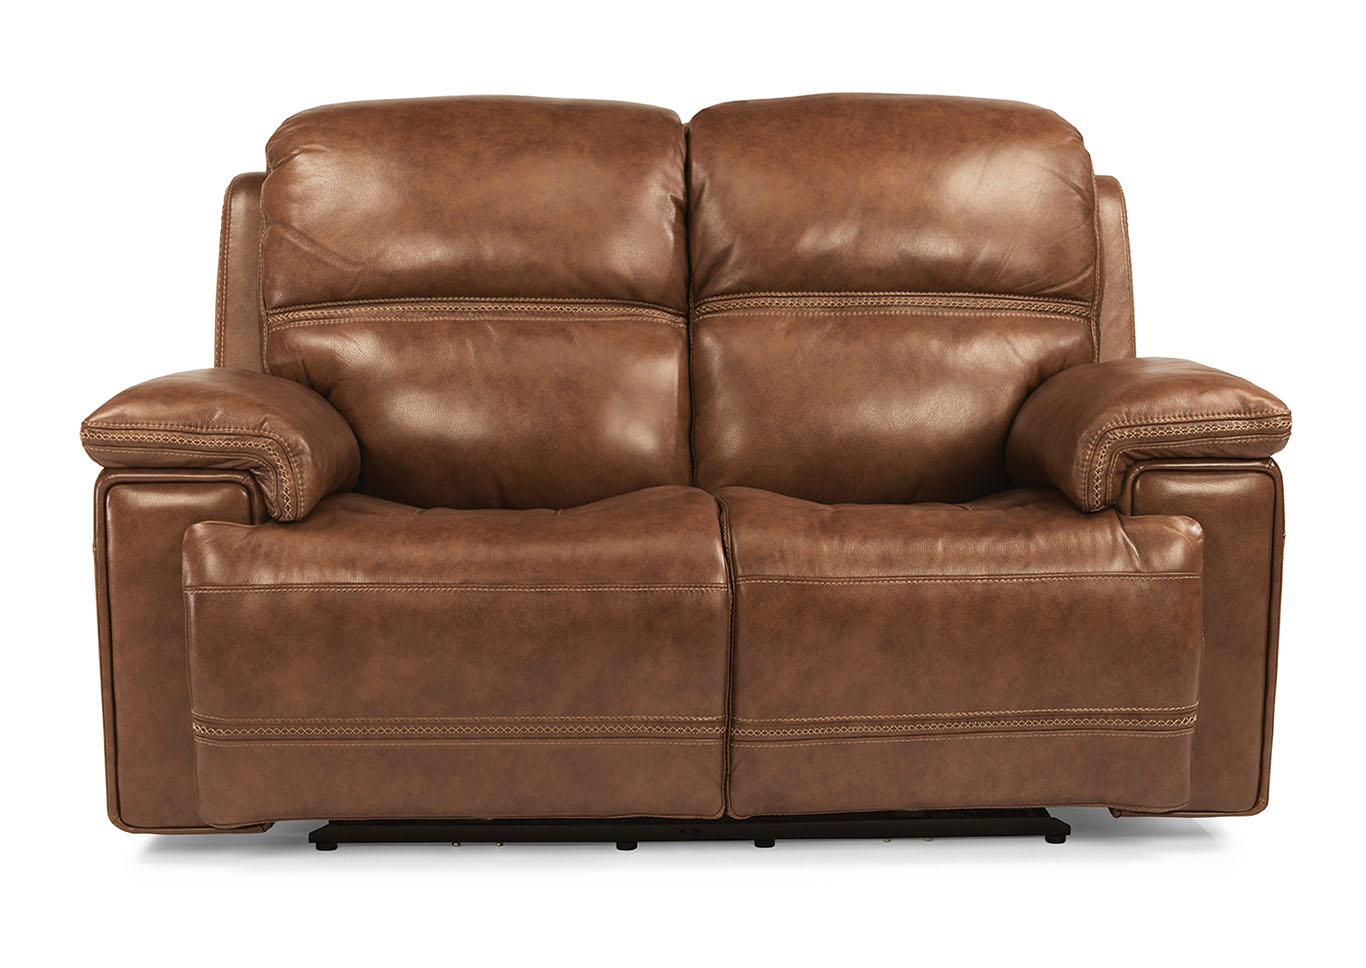 V. Watts Furniture Fenwick Leather Power Reclining Loveseat w/Power ...